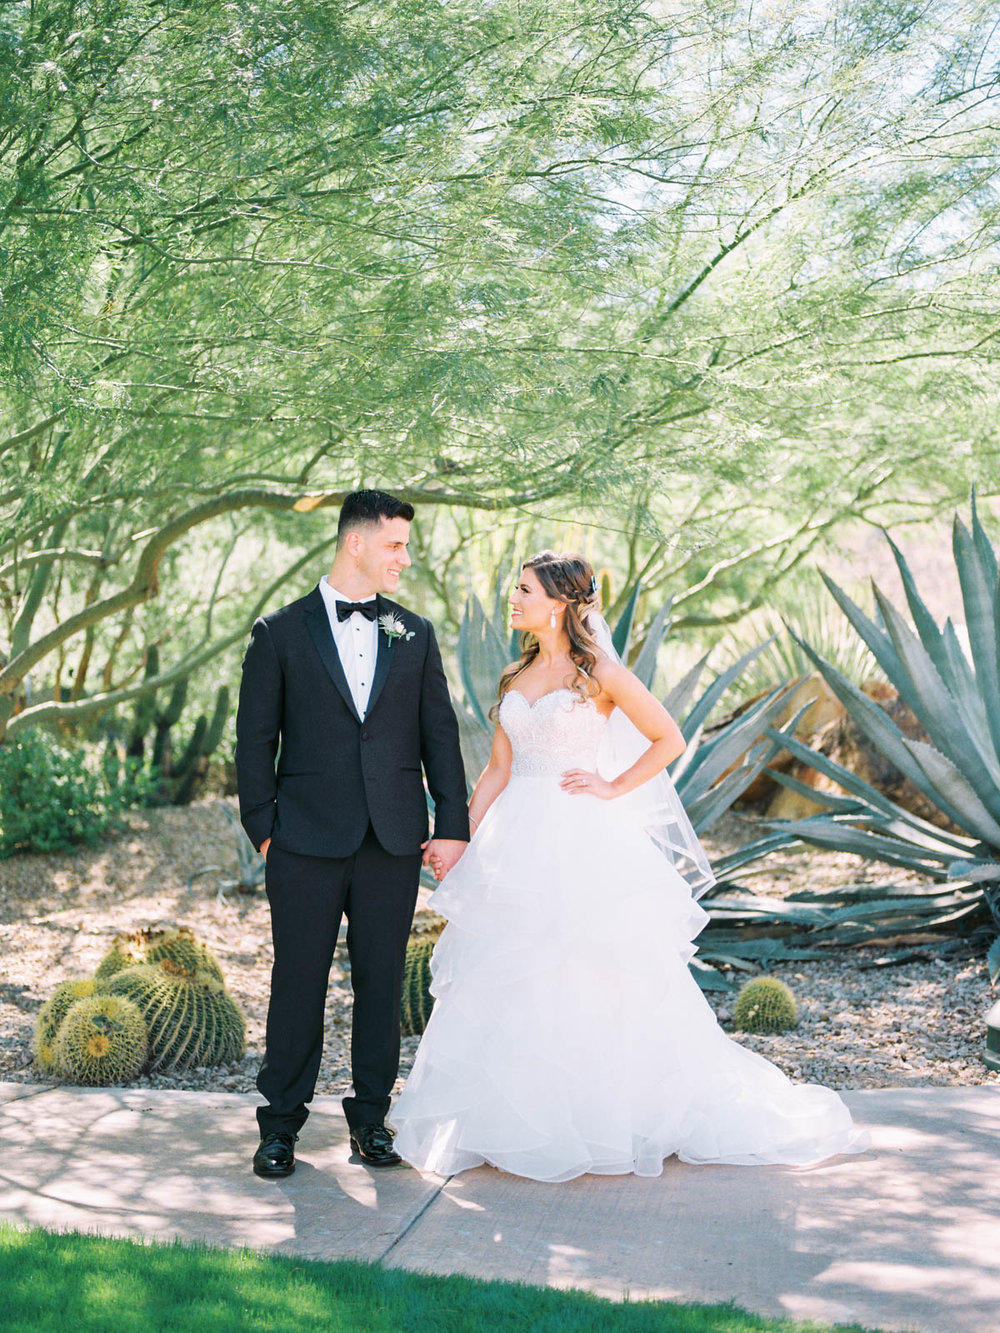 Desert wedding captured by Tucson Wedding Photographers Betsy & John